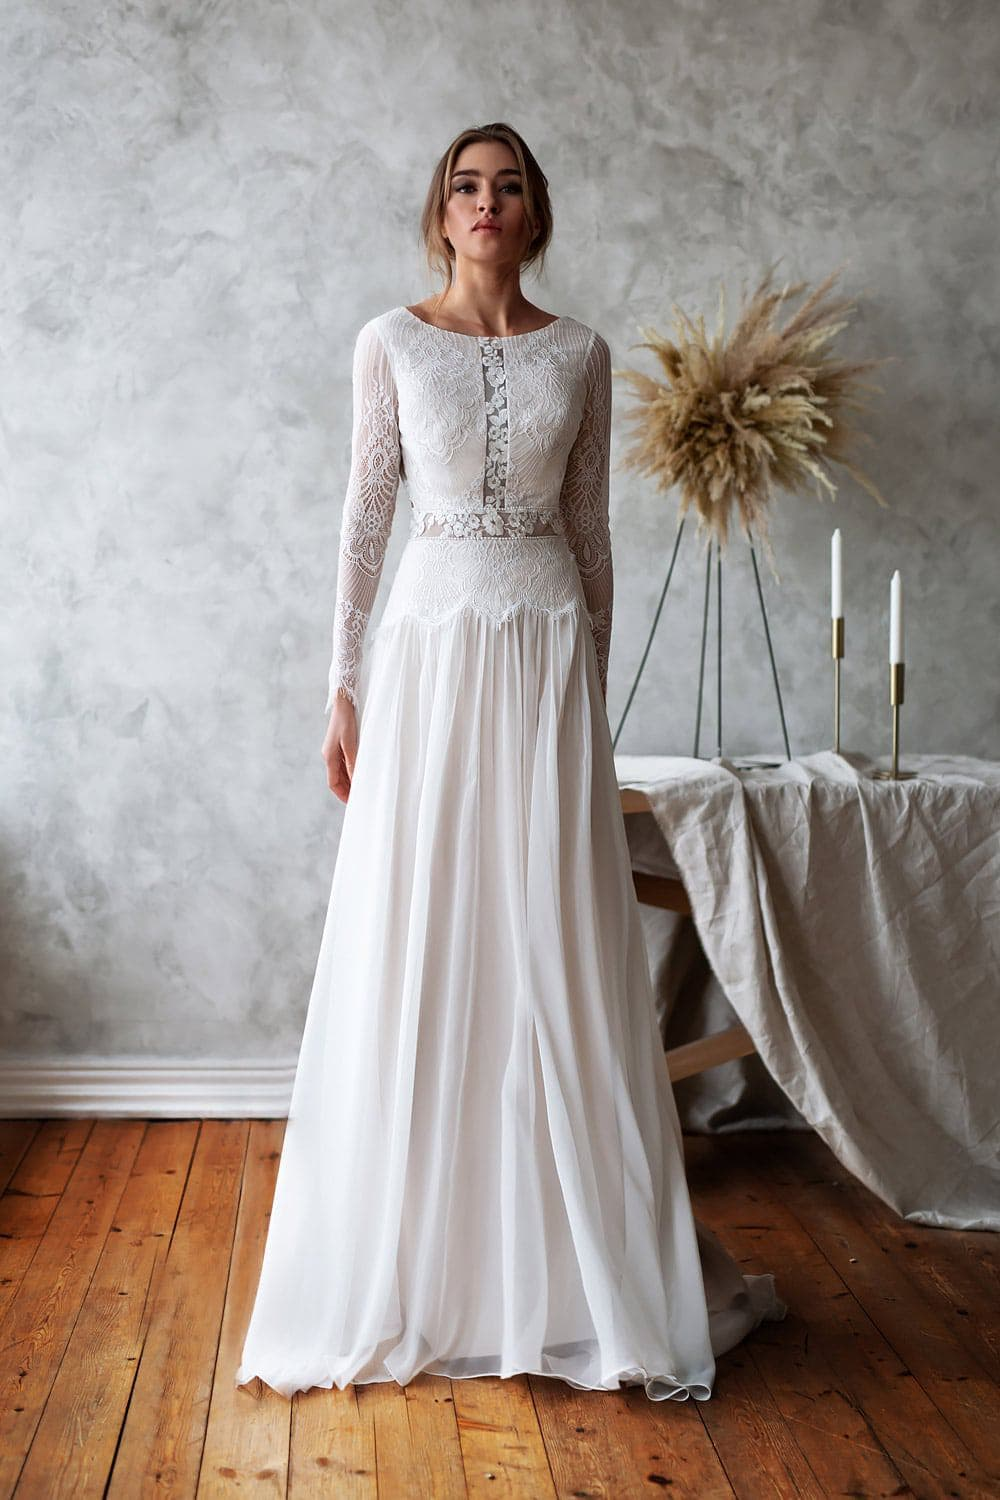 Vintage Lace Wedding Dresses With Sleeves   Bridal Shop London